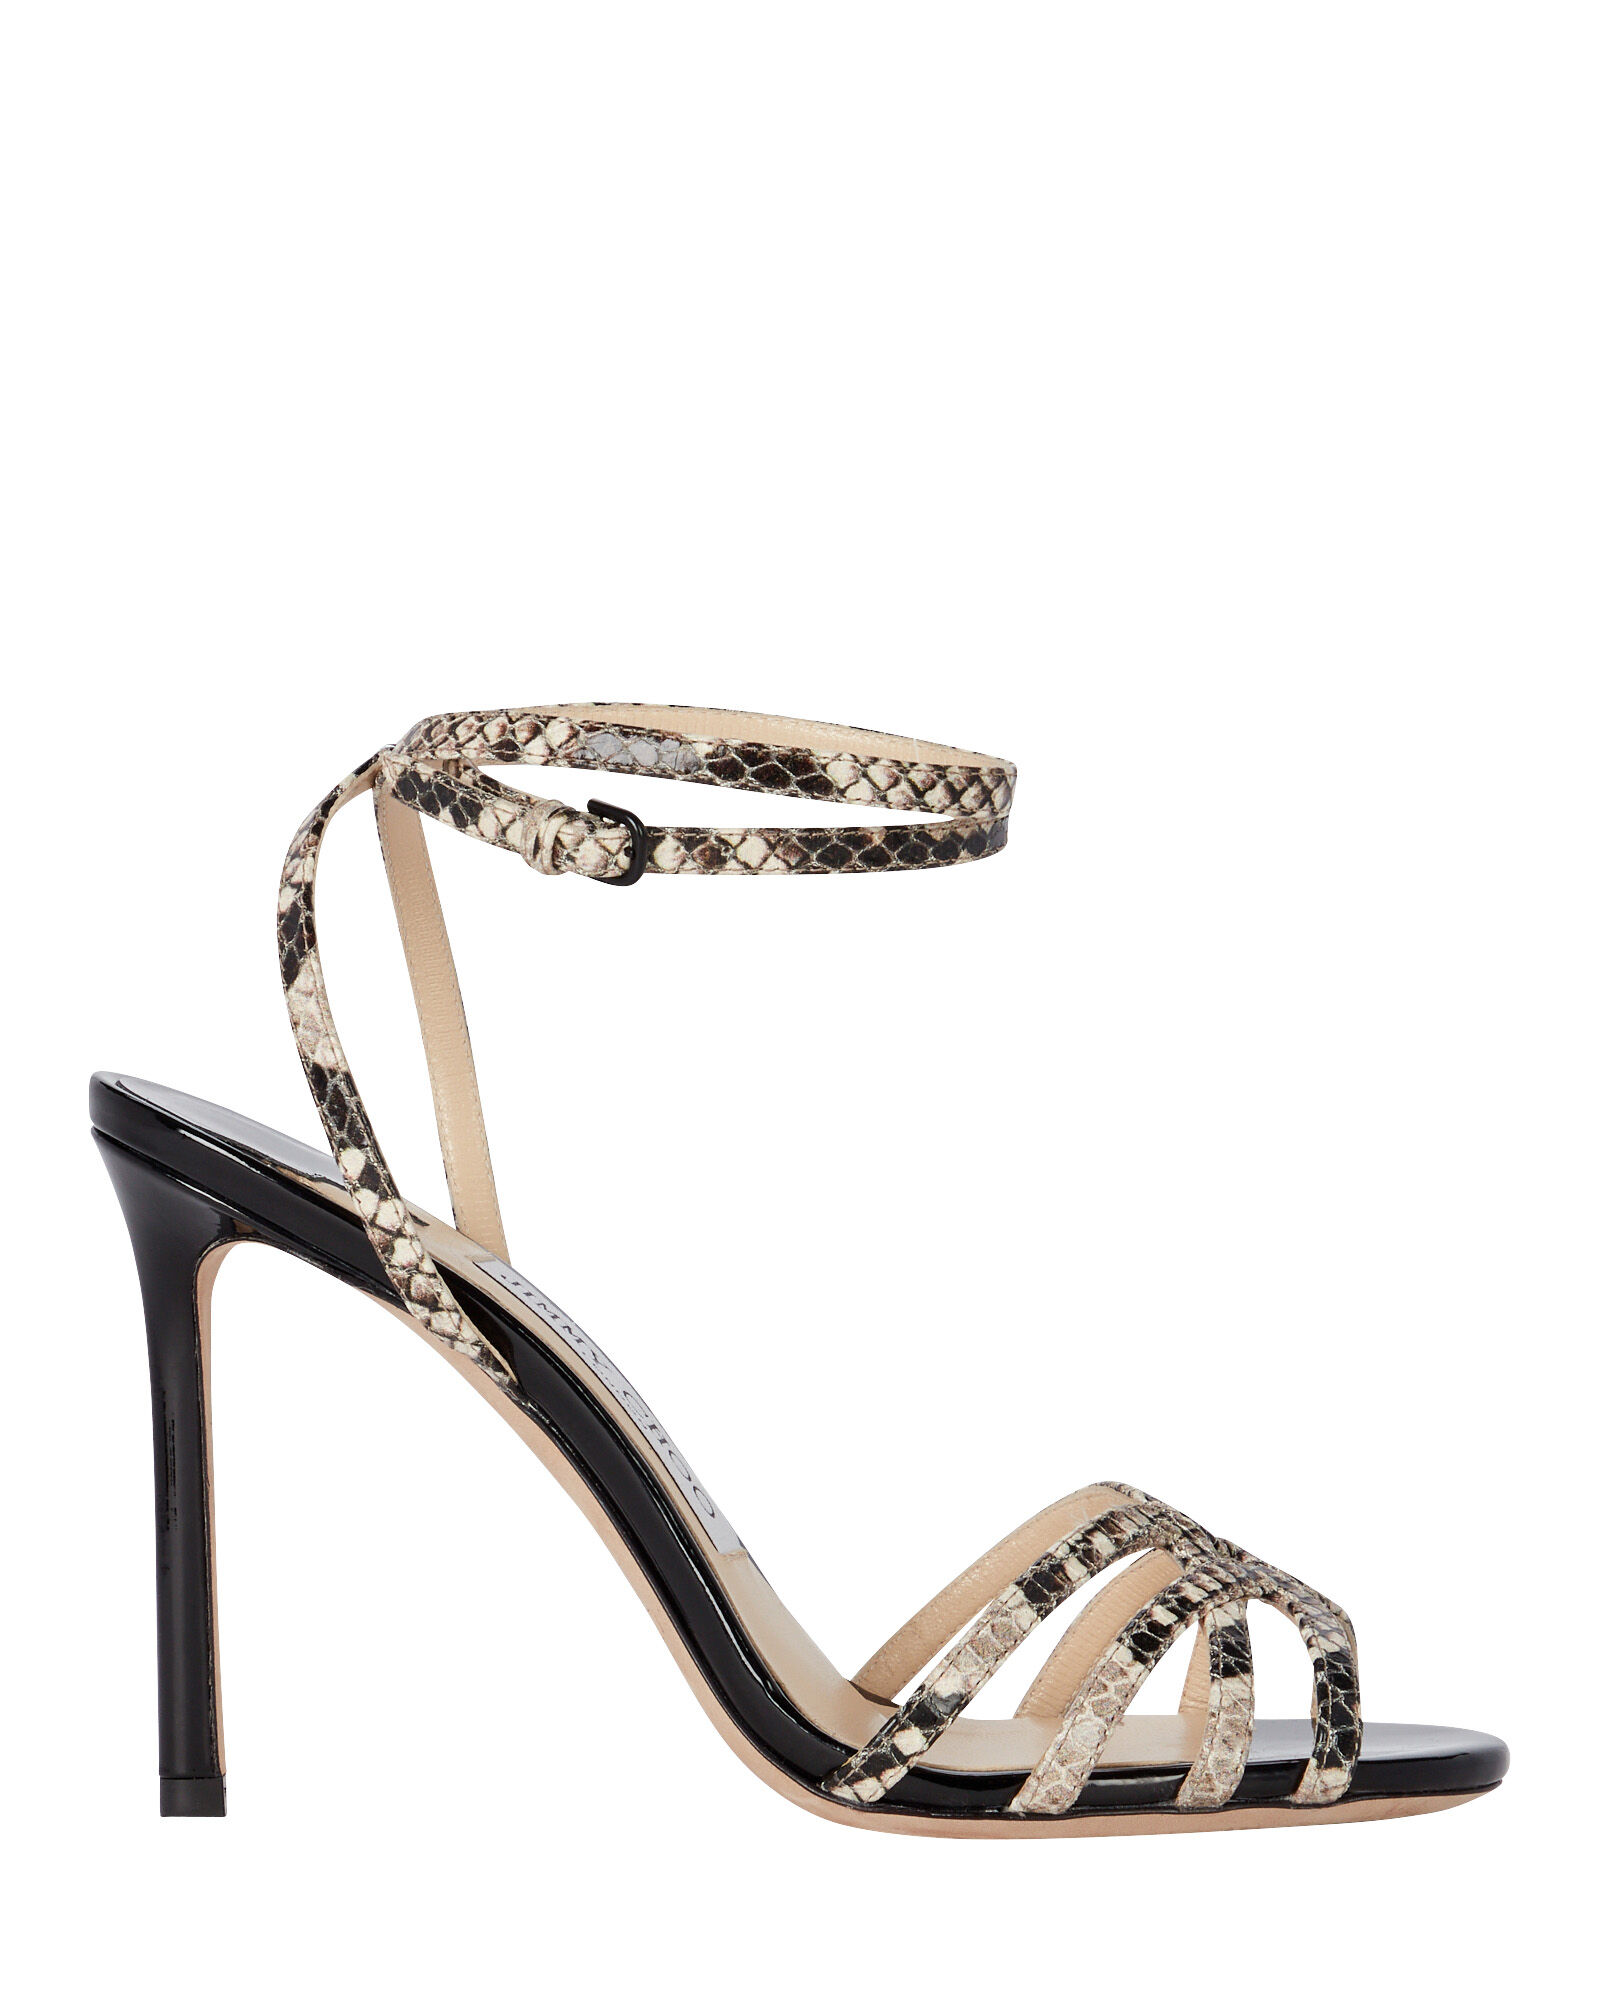 Mimi 100 Snake-Embossed Sandals, GREY, hi-res